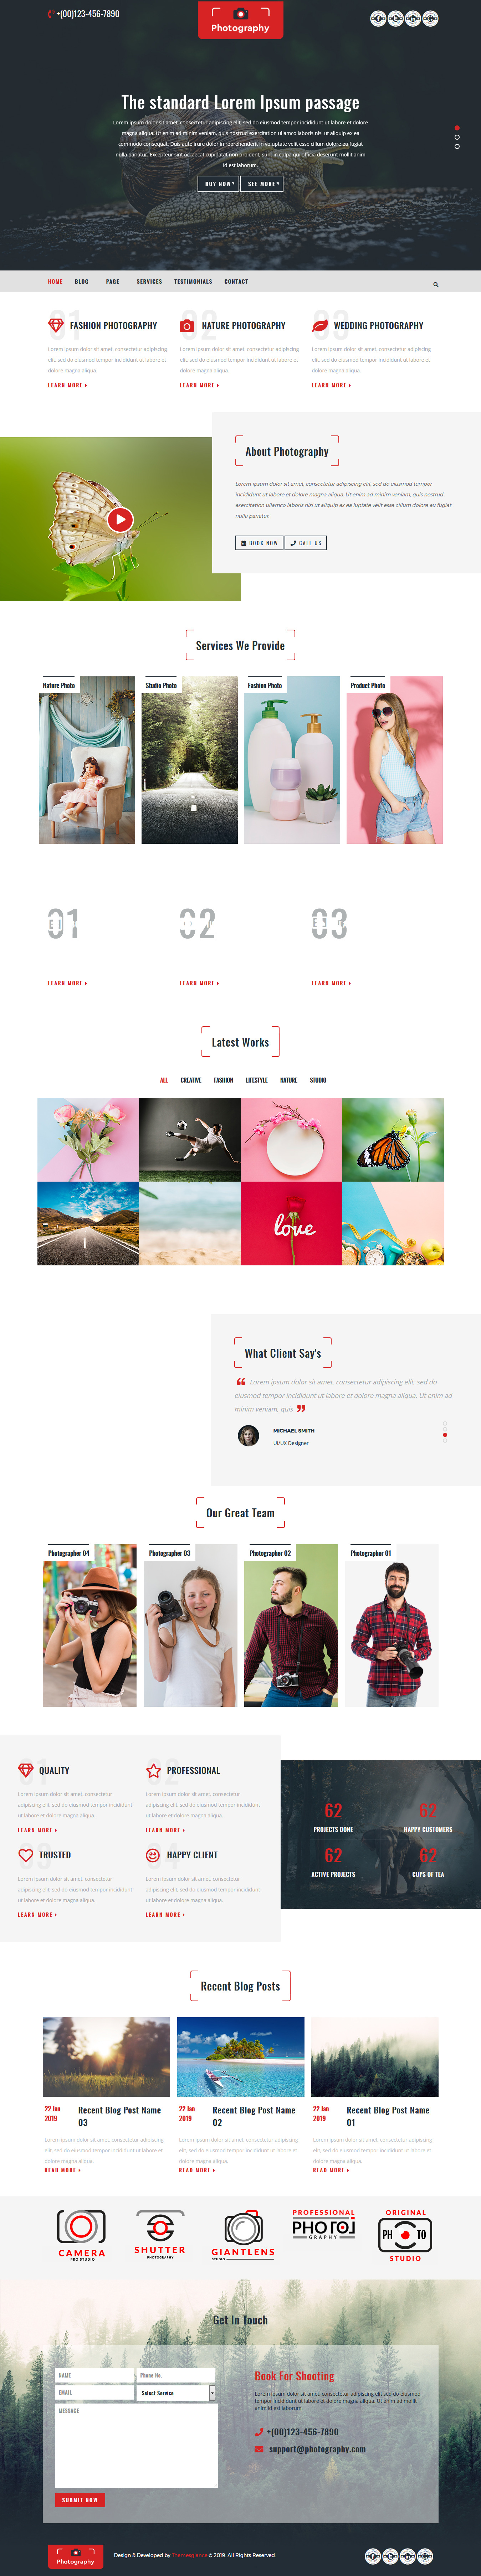 multipurpose photography best free gallery wordpress theme - 10+ Best Free Gallery WordPress Themes